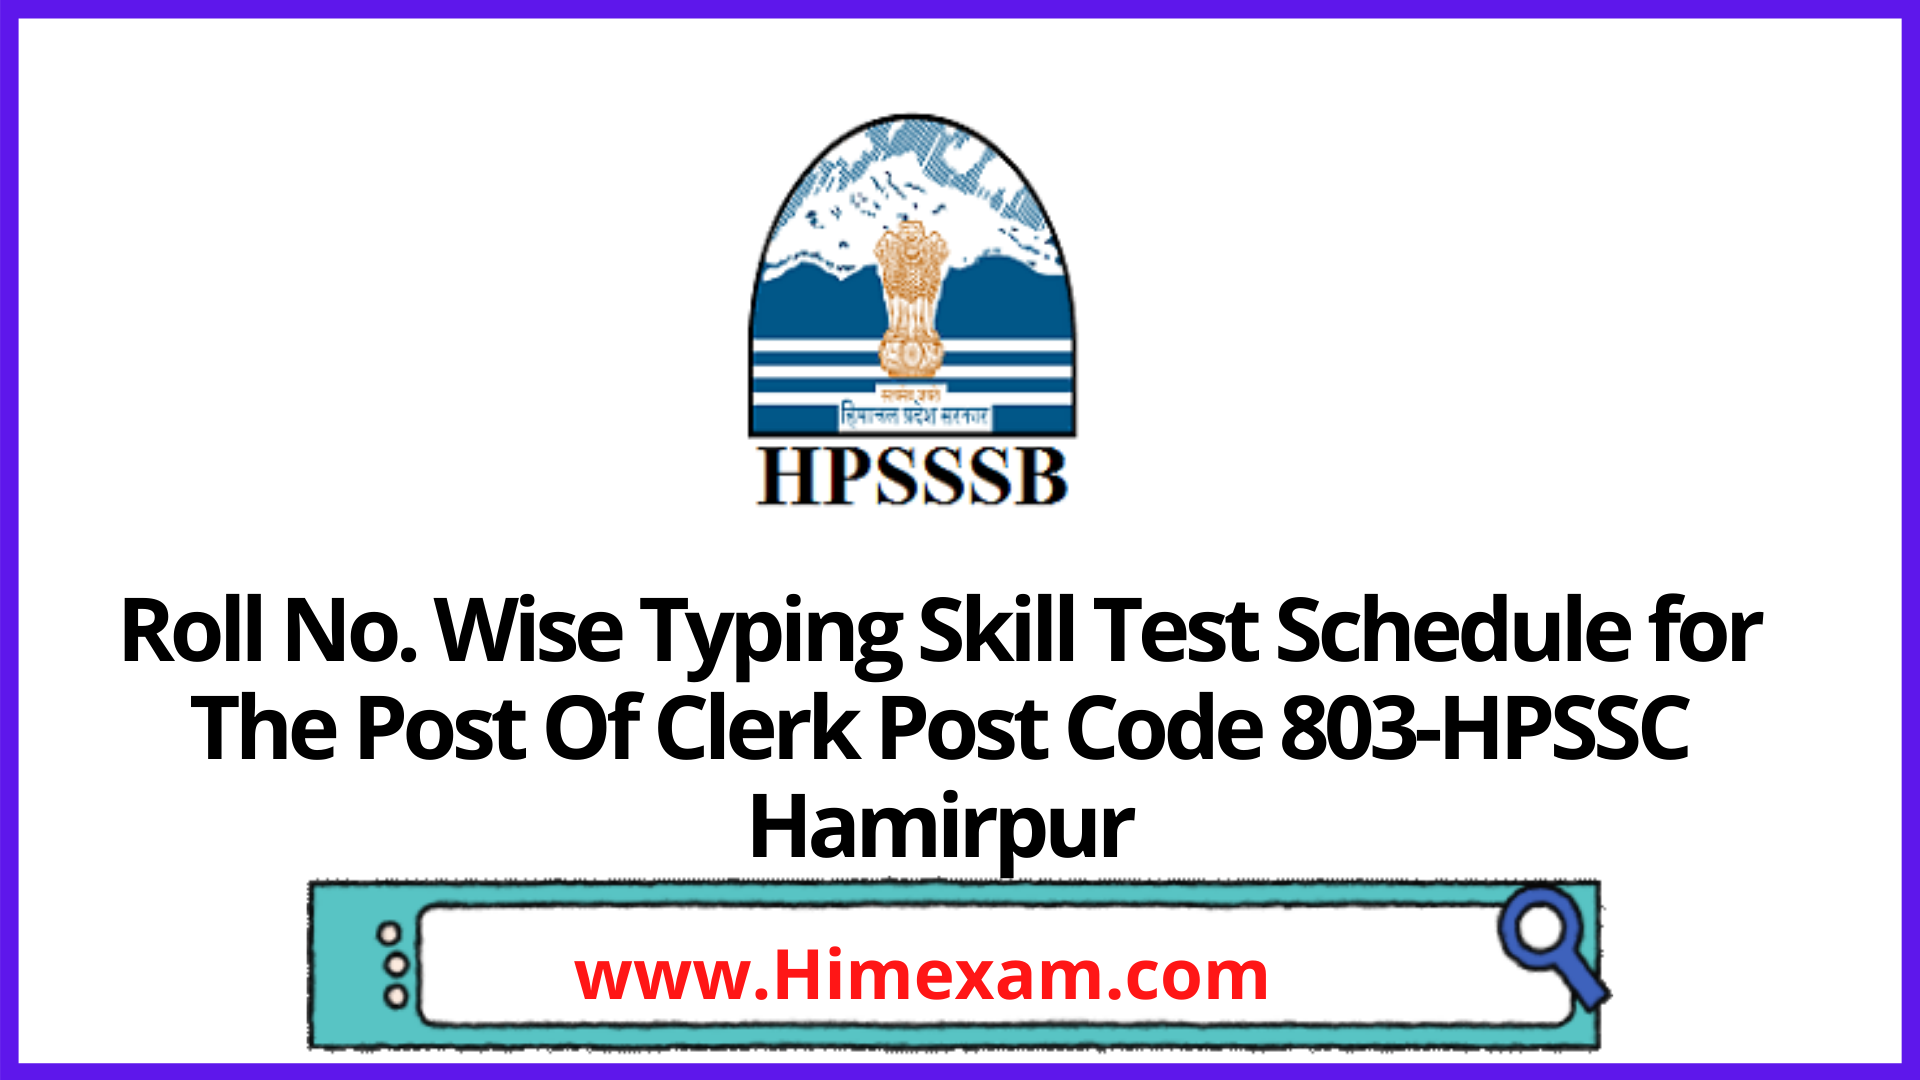 Roll No. Wise Typing Skill Test Schedule for The Post Of Clerk Post Code 803-HPSSC Hamirpur